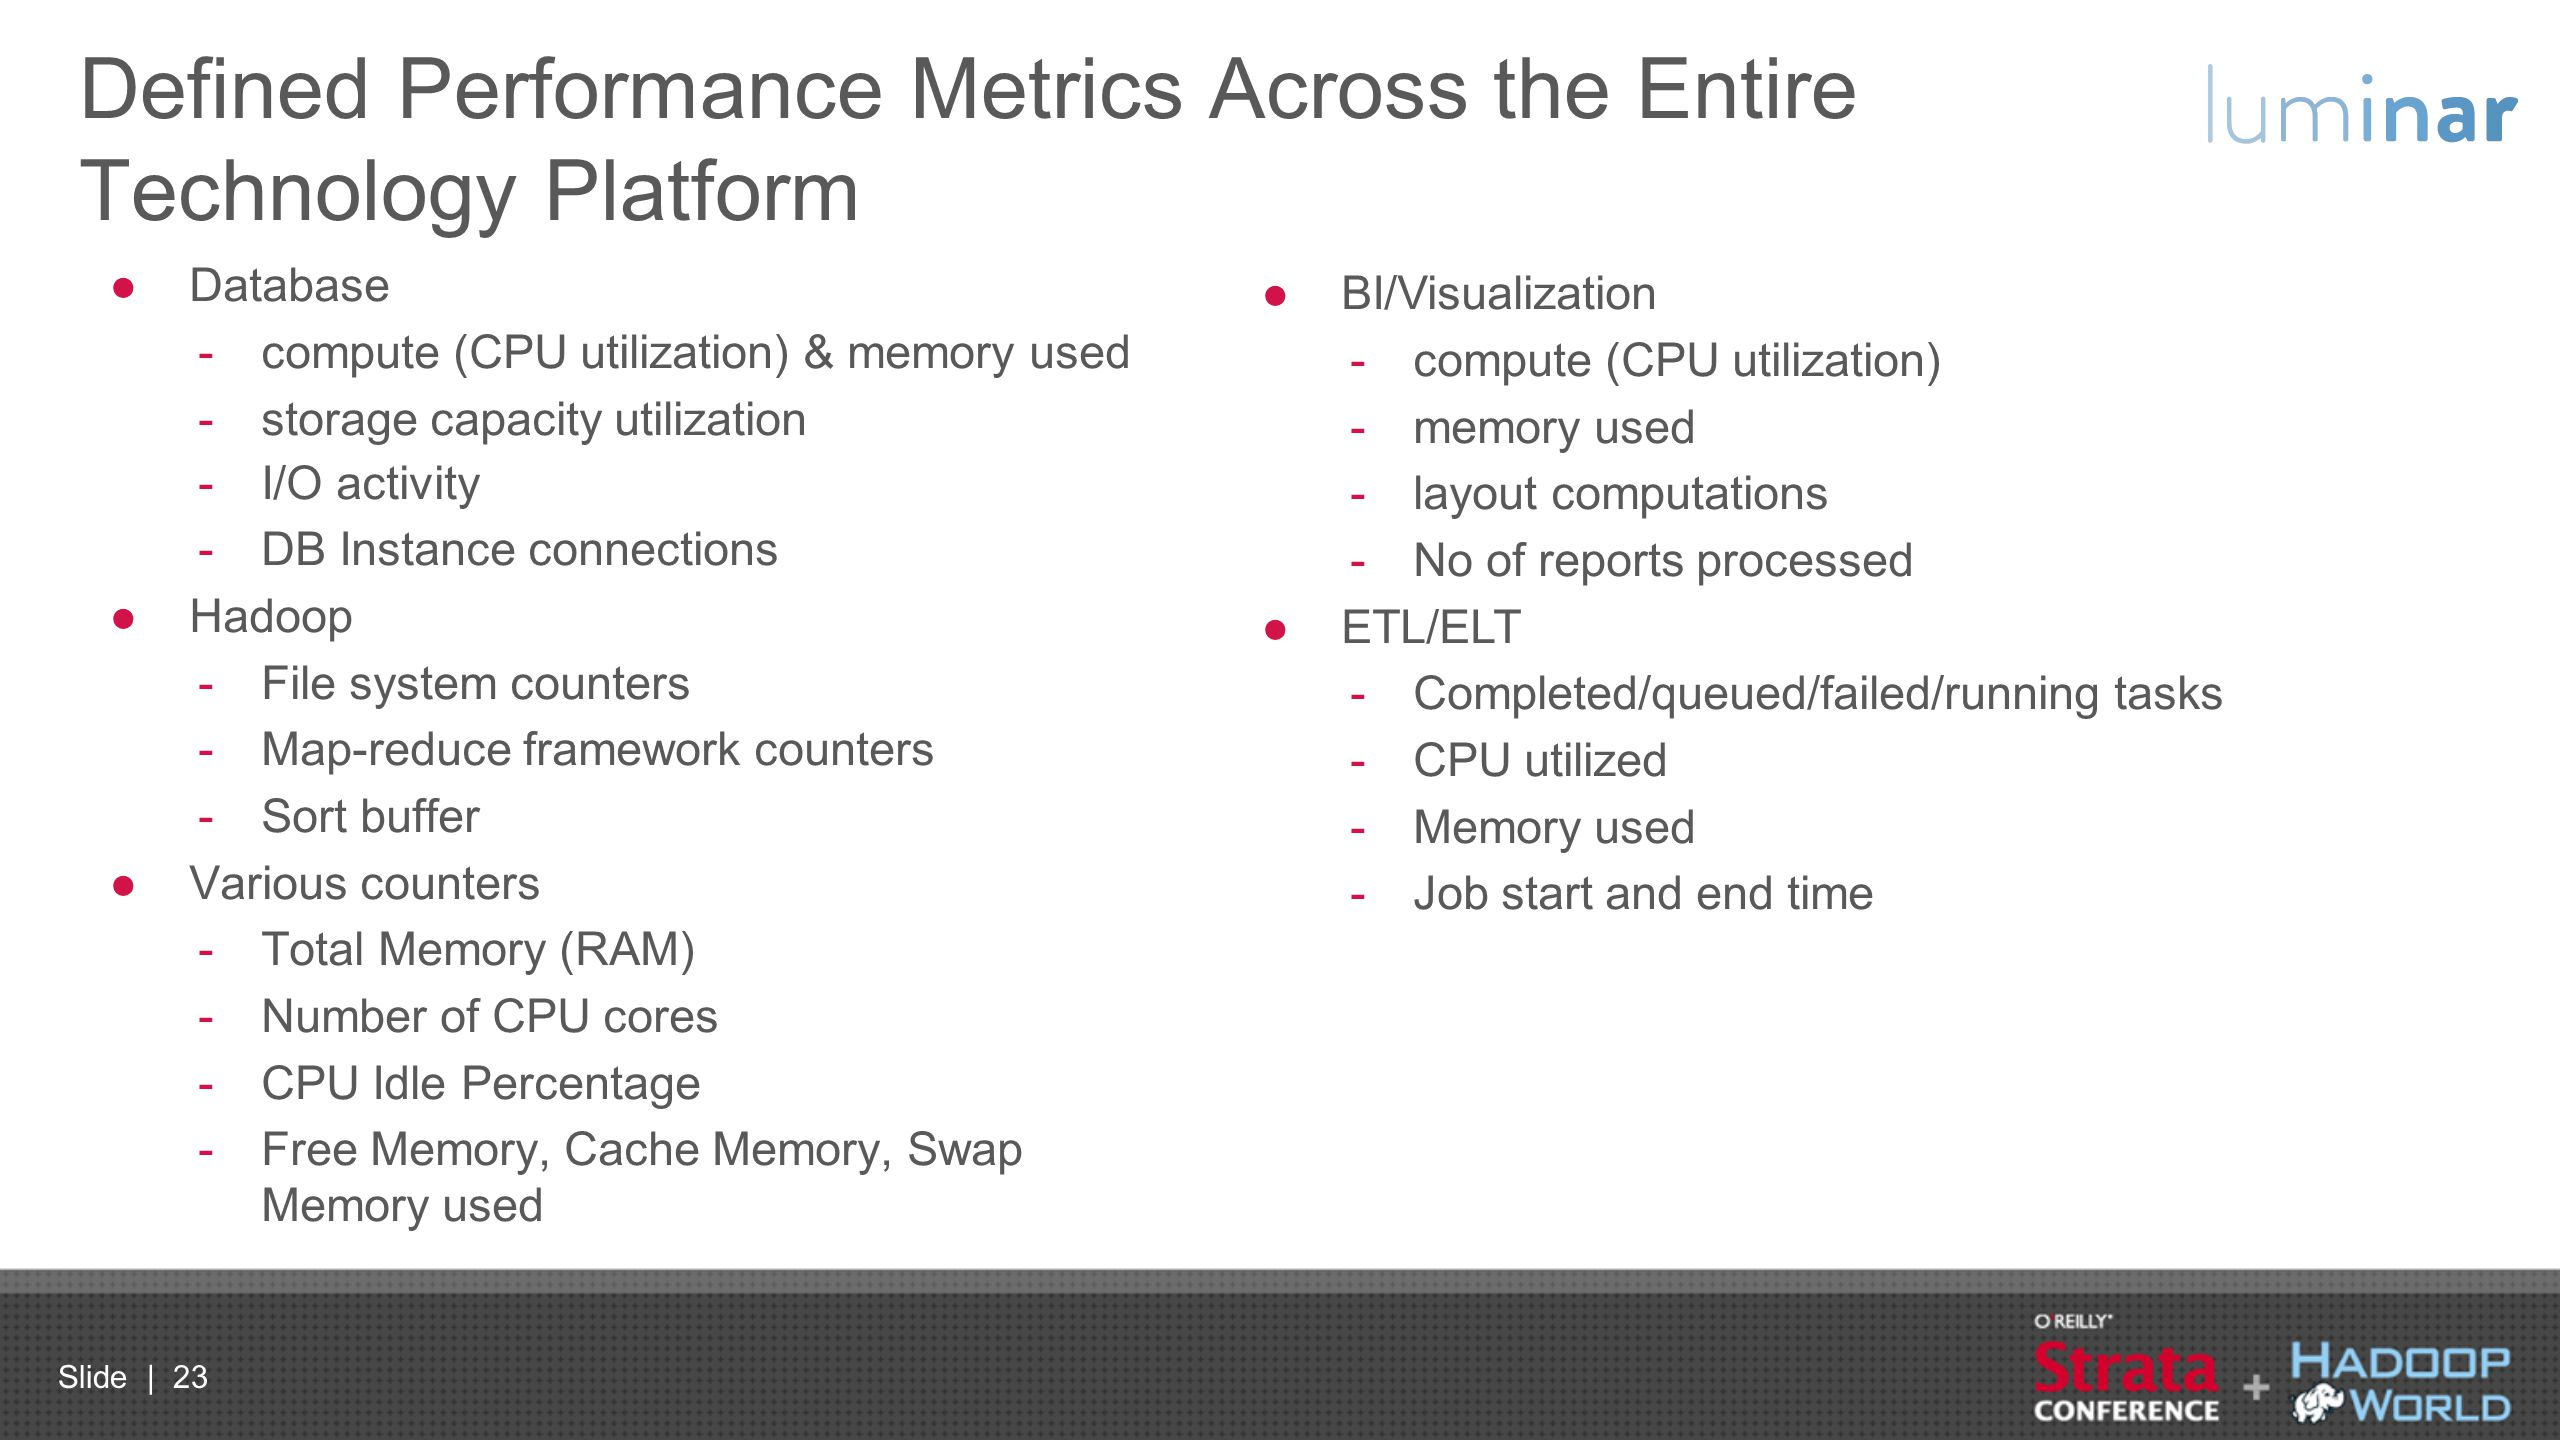 Defined Performance Metrics Across the Entire Technology Platform